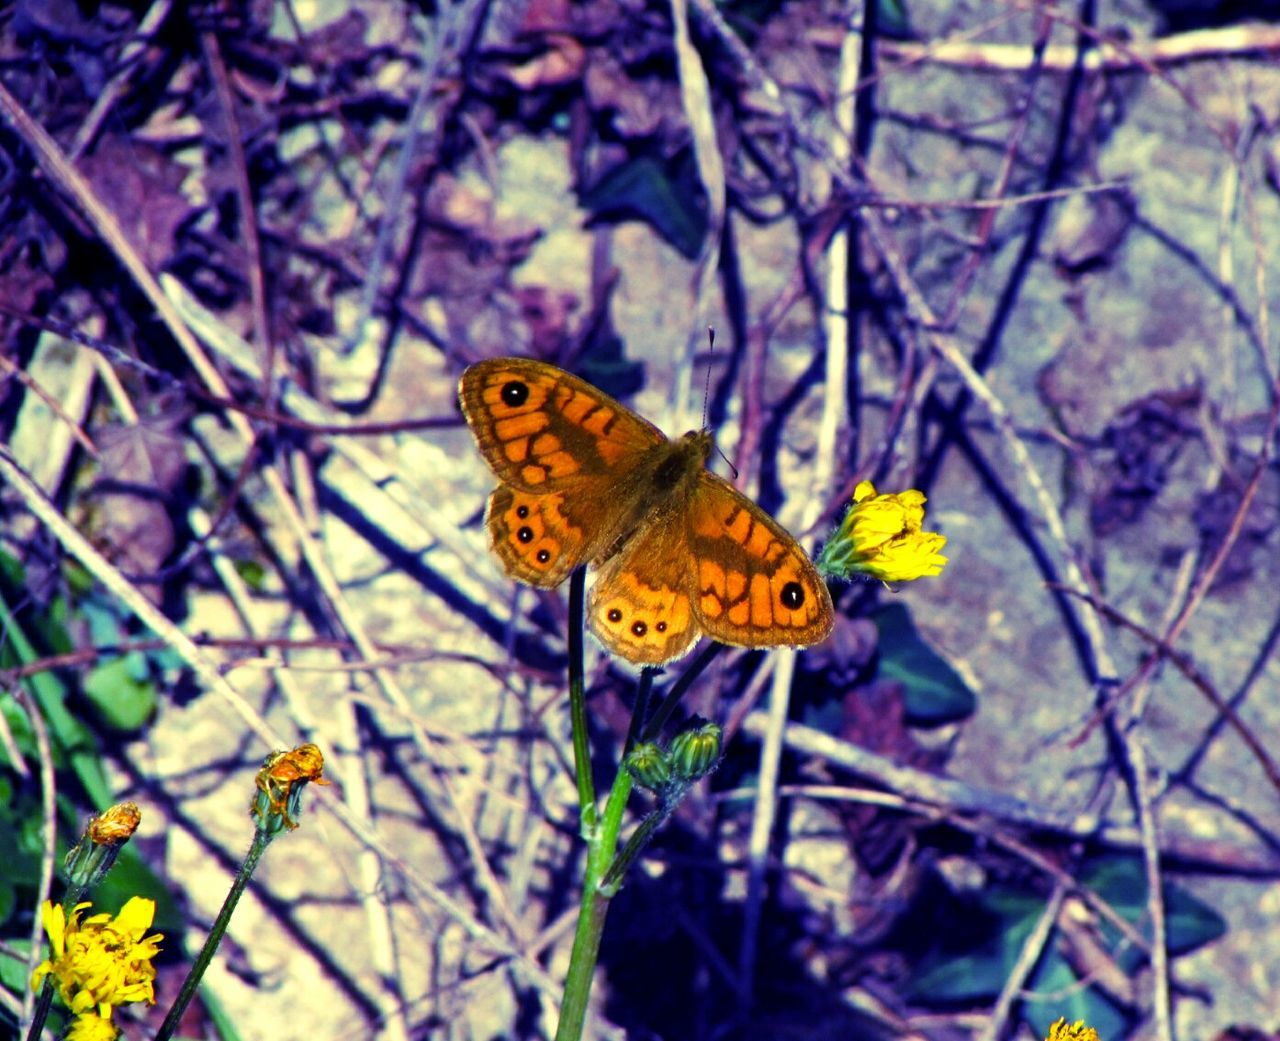 Little beauty between dead branches.. Butterfly ❤ Butterfly Collection Butterfly Butterfly And Flowers Butterfly Macro Flowers Brunches Relaxing Cheese! Taking Photos From My Point Of View My Point Of View Walking Colors Colorfull Light And Shadow Light And Dark Watching EyeEmBestPics EyeEm Best Shots Beauty In Nature Beautiful Nature Nuature Nature_collection Nature Photography